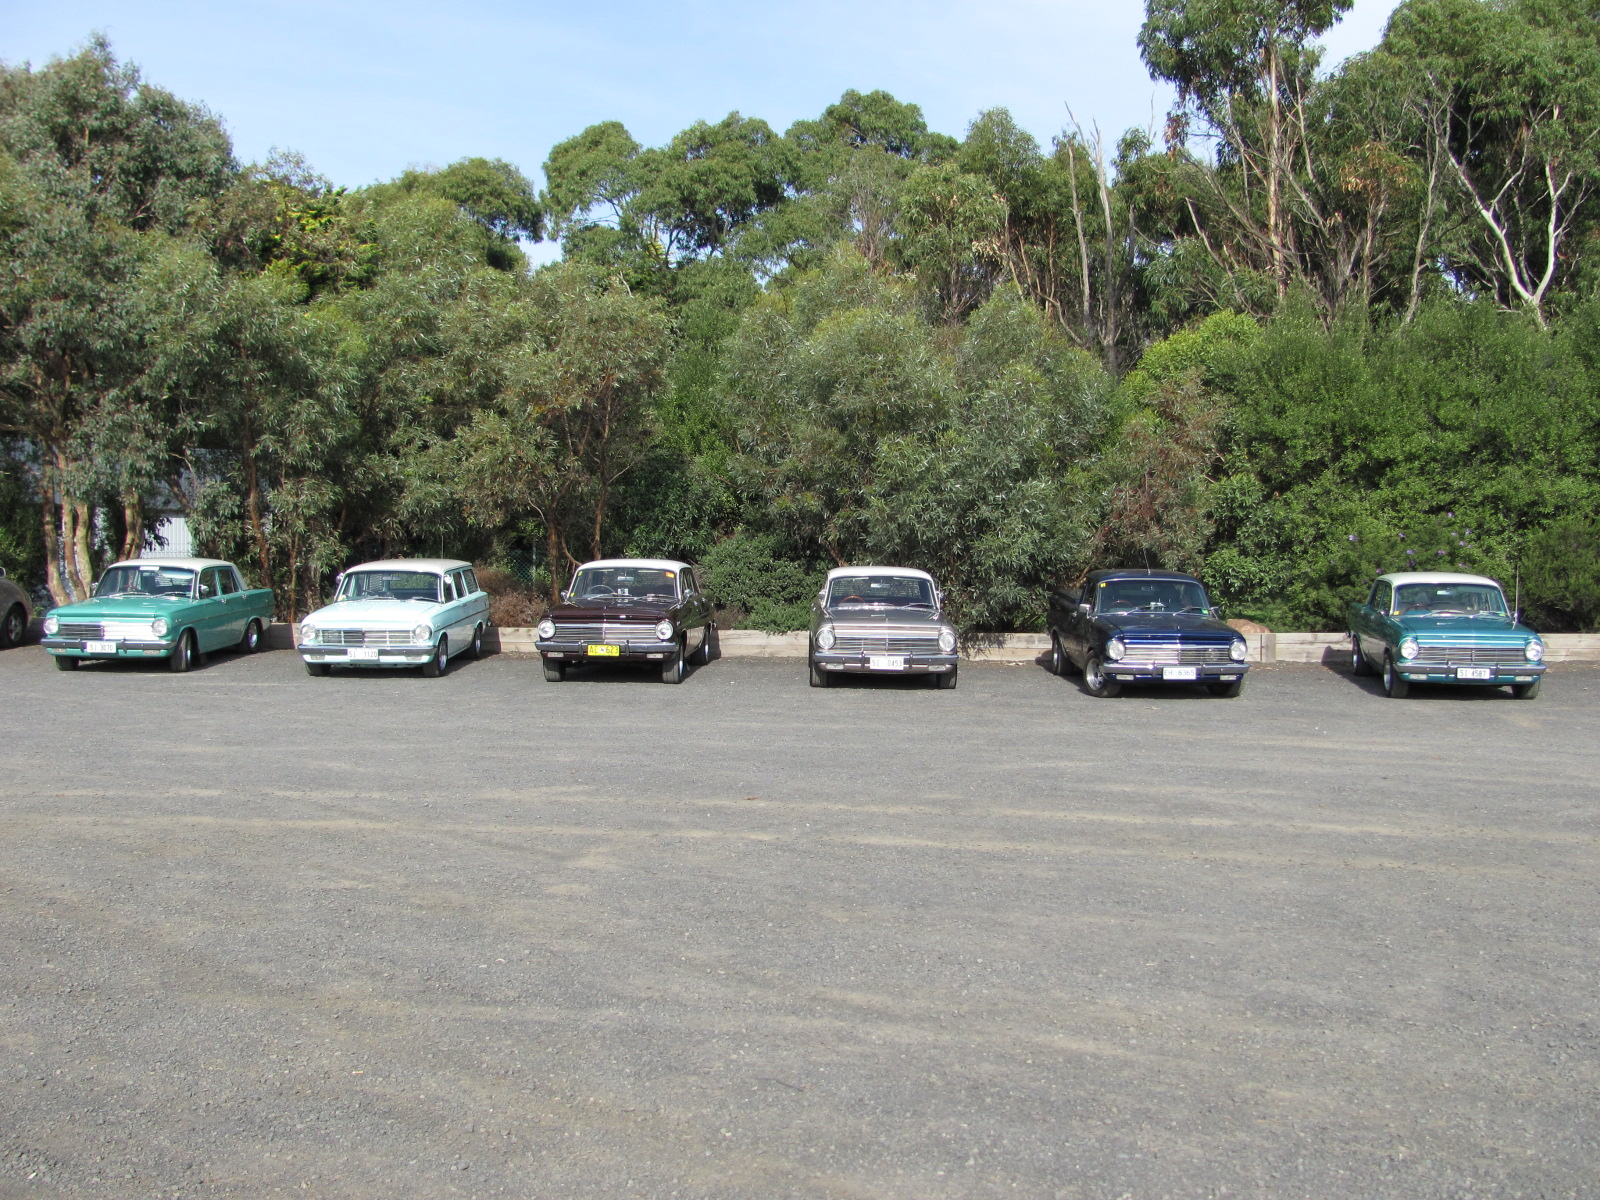 File:Old cars at Phillip Island racing carpark OIC.jpg - Wikimedia ...